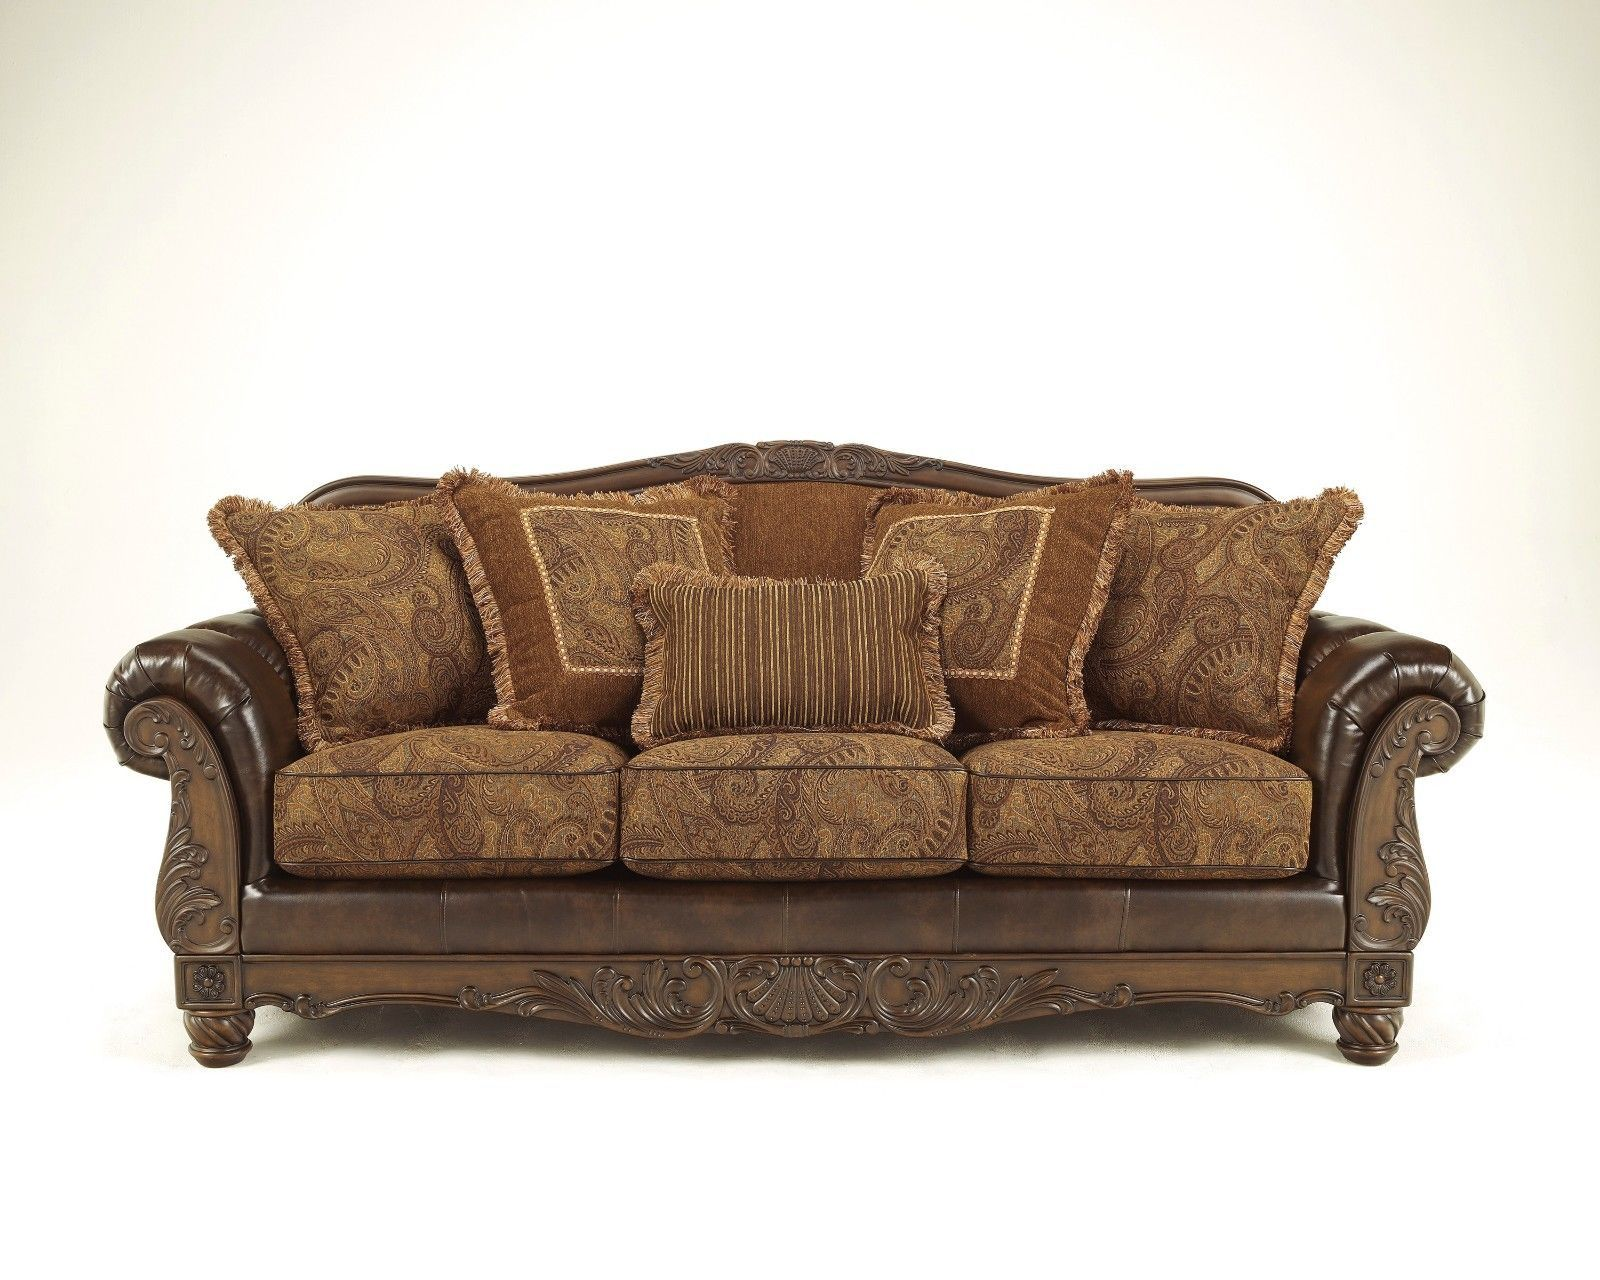 Old World Living Room Furniture Details About New Ashley Old World Traditional Antique Sofa Couch